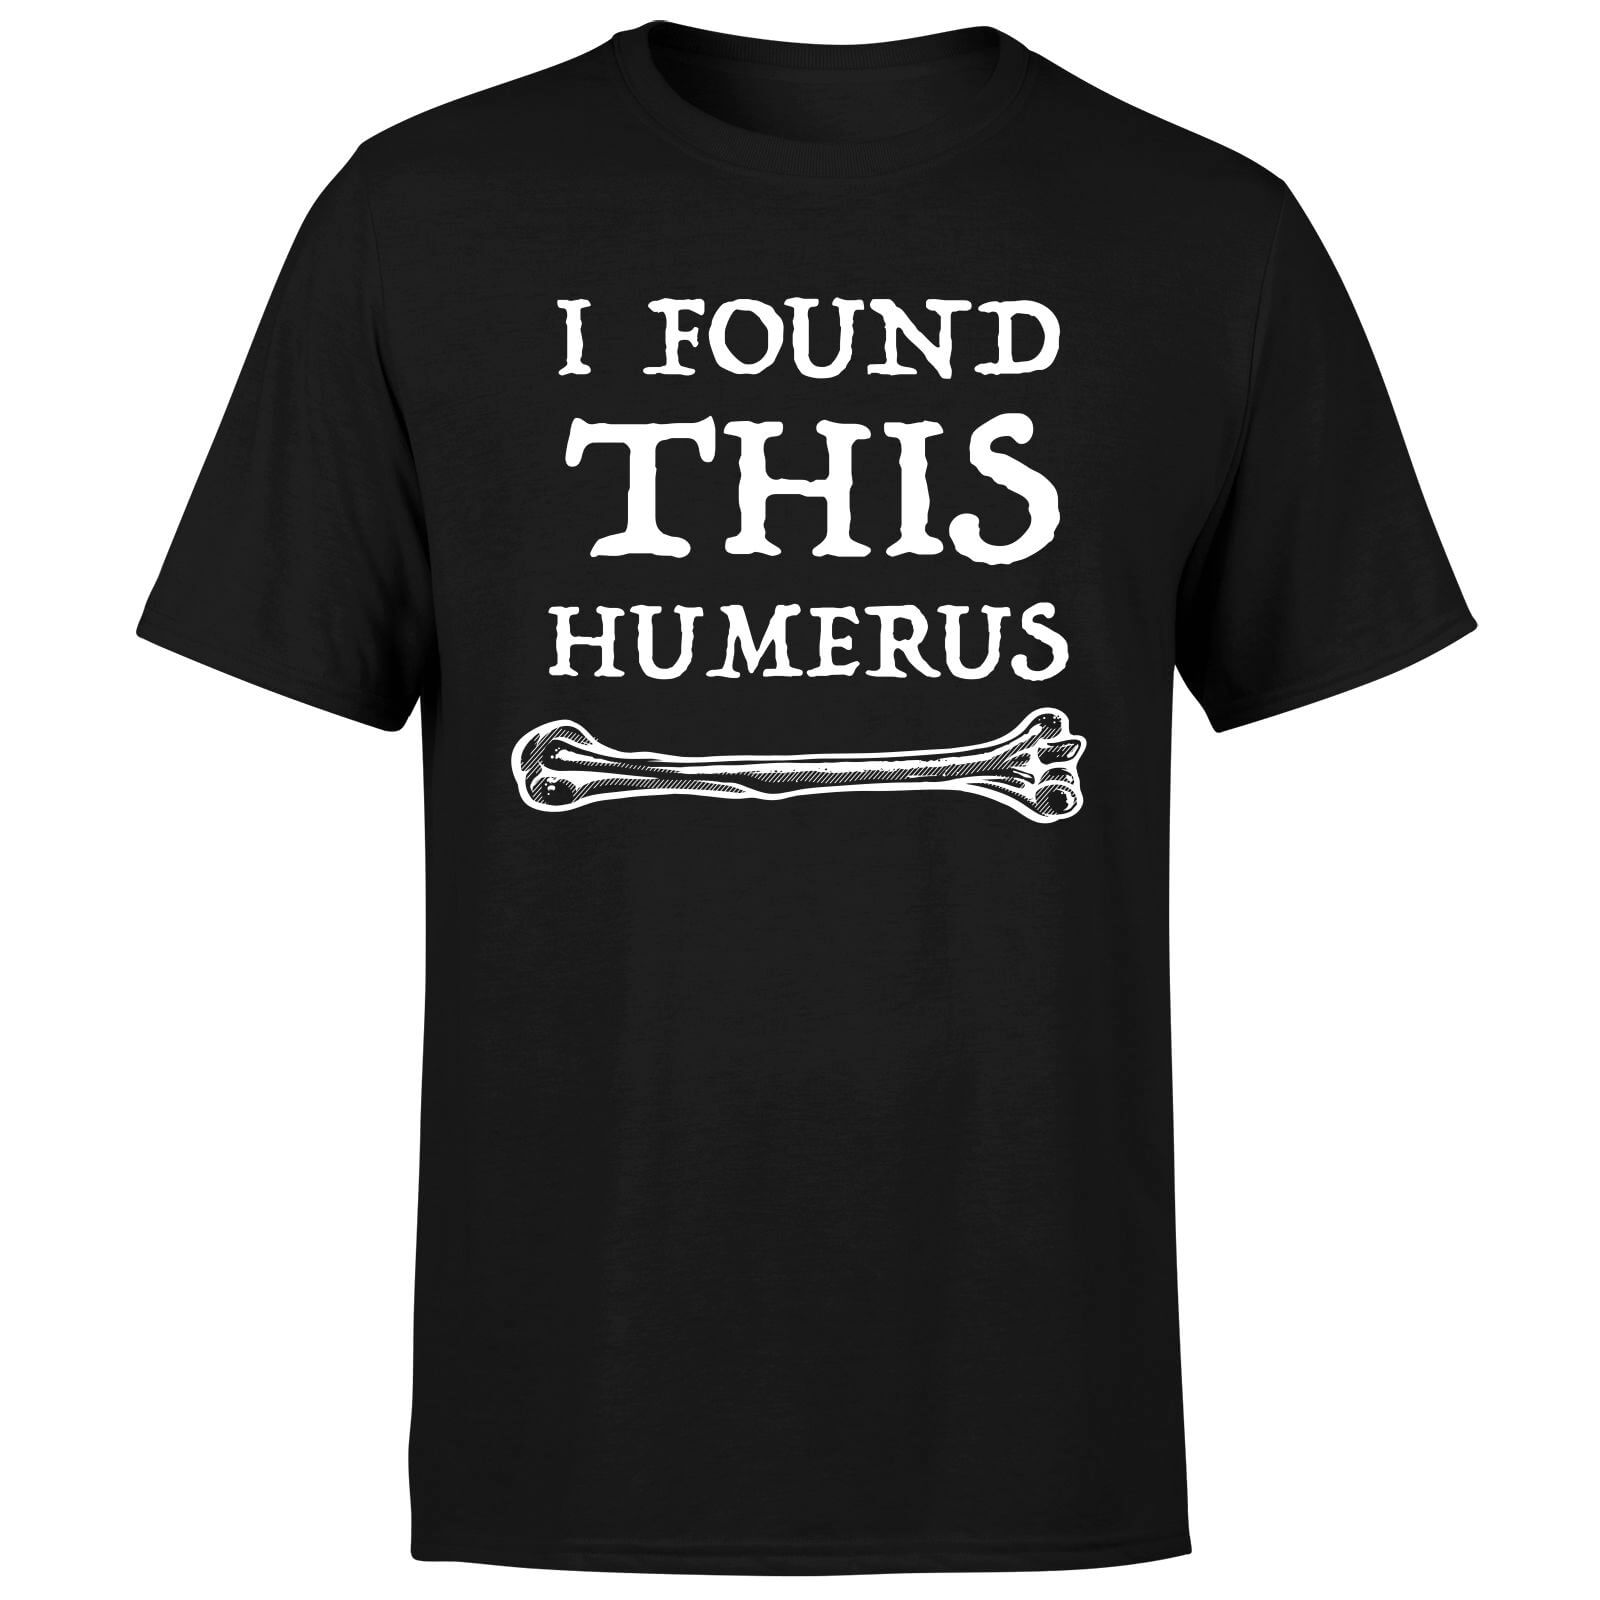 I Found this Humurus T-Shirt - Black